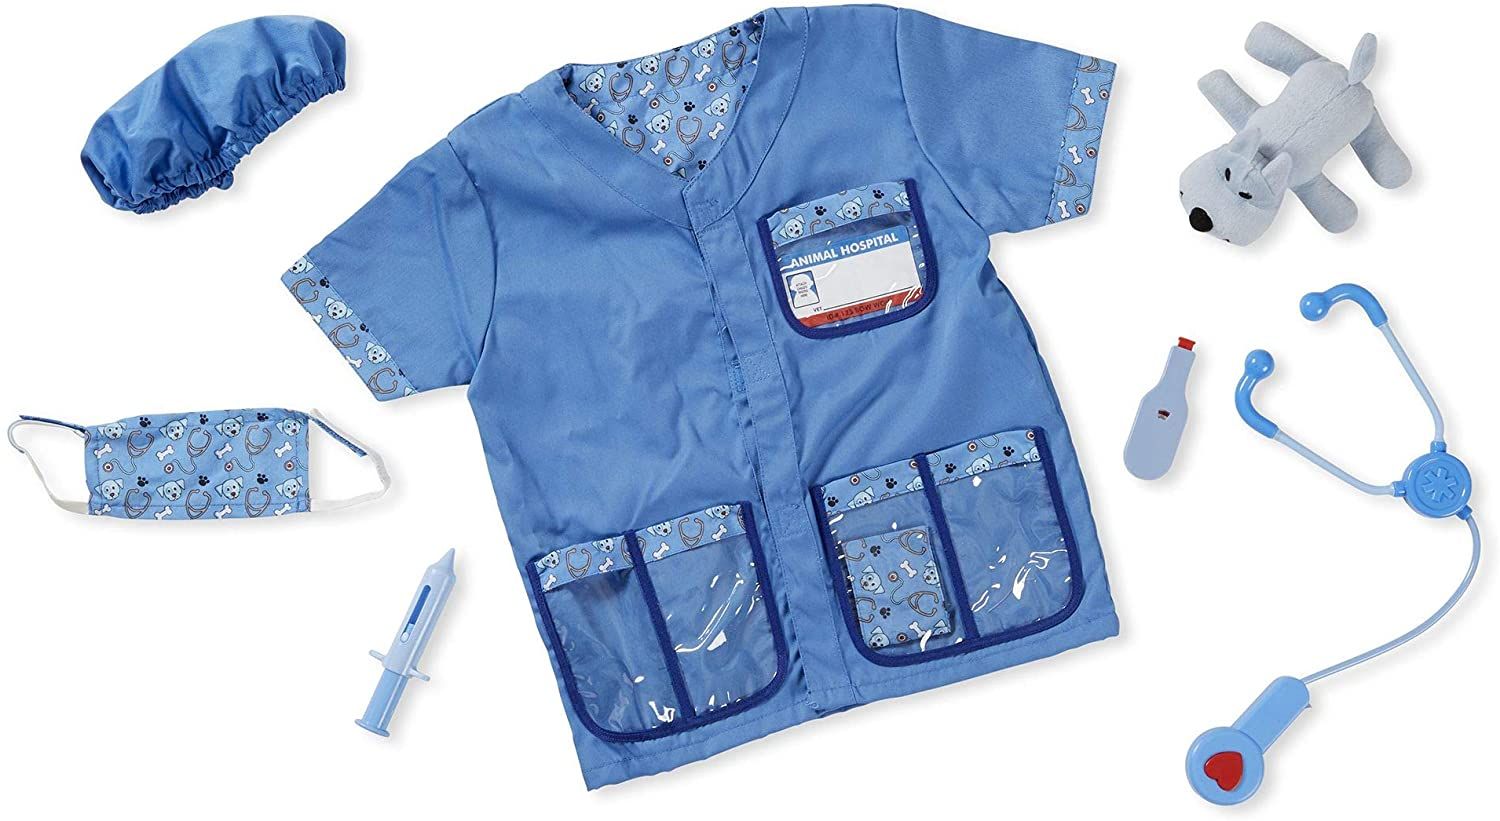 Melissa Doug Veterinarian Role Play Costume Set Pretend Play High Quality Materials Machine Washable 44 45 Cm H X 60 96 Cm W X 1 905 Cm L